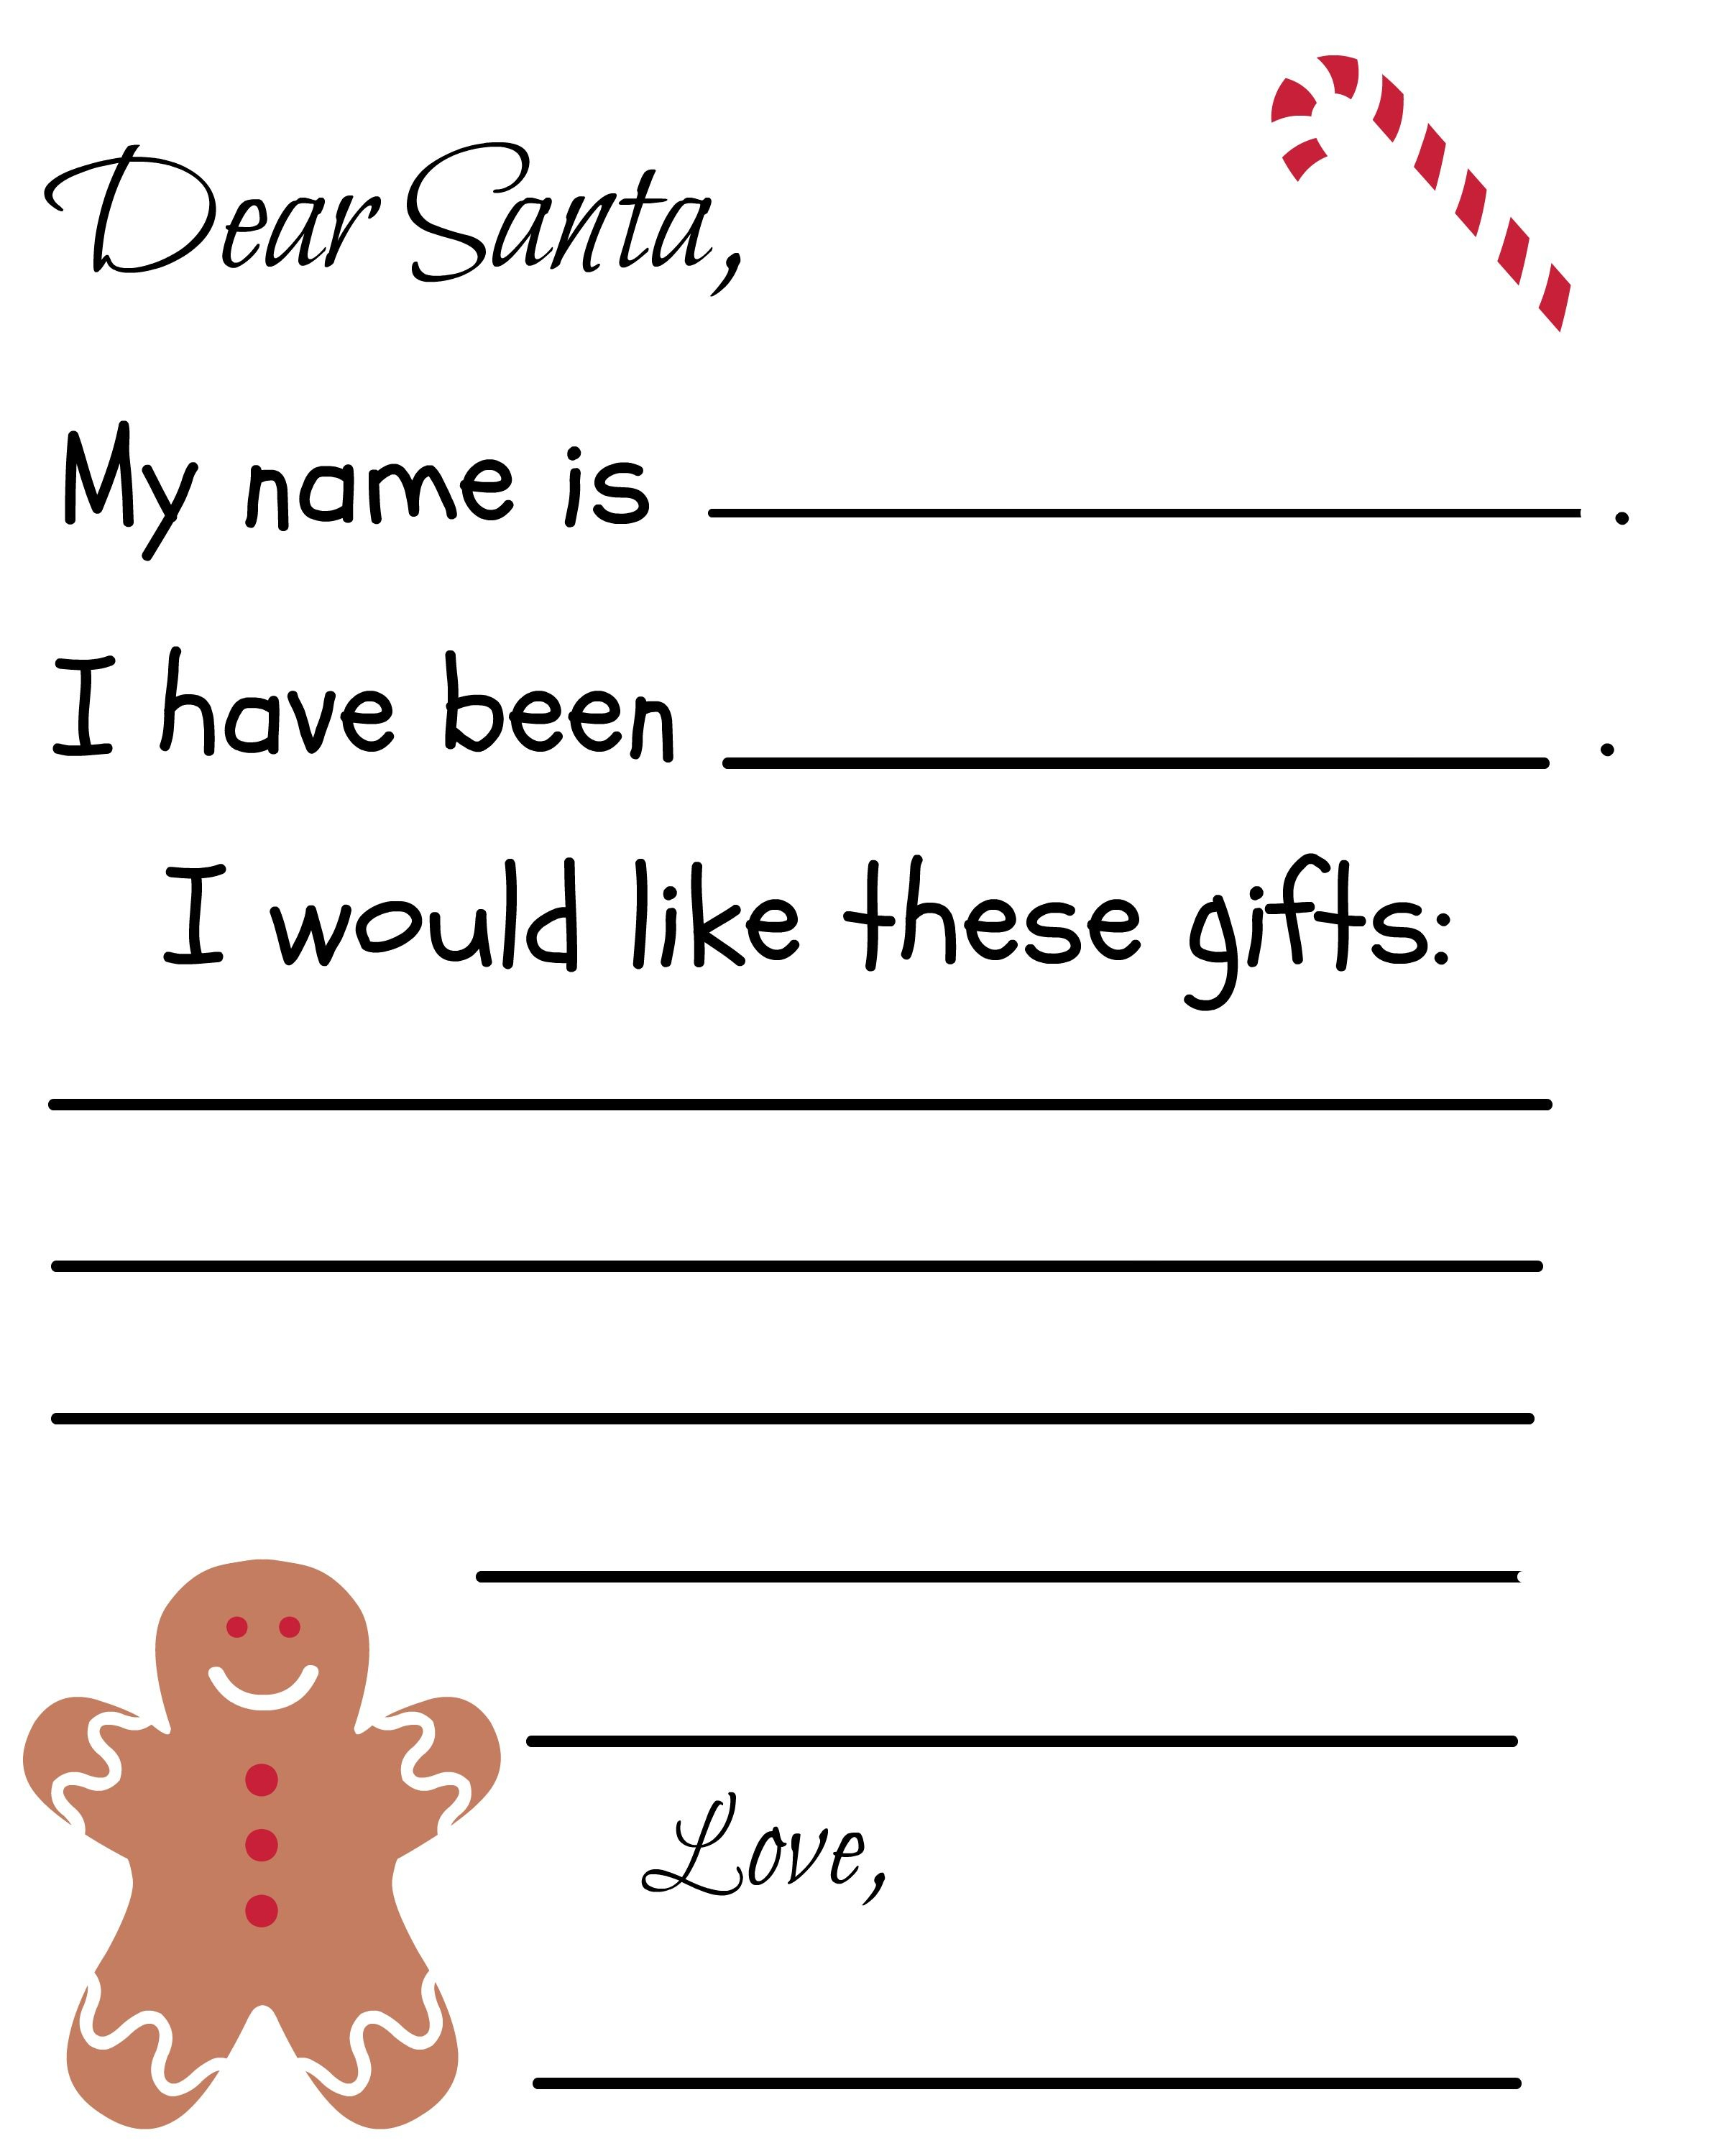 Dear Santa Letter Template Examples | Letter Cover Templates